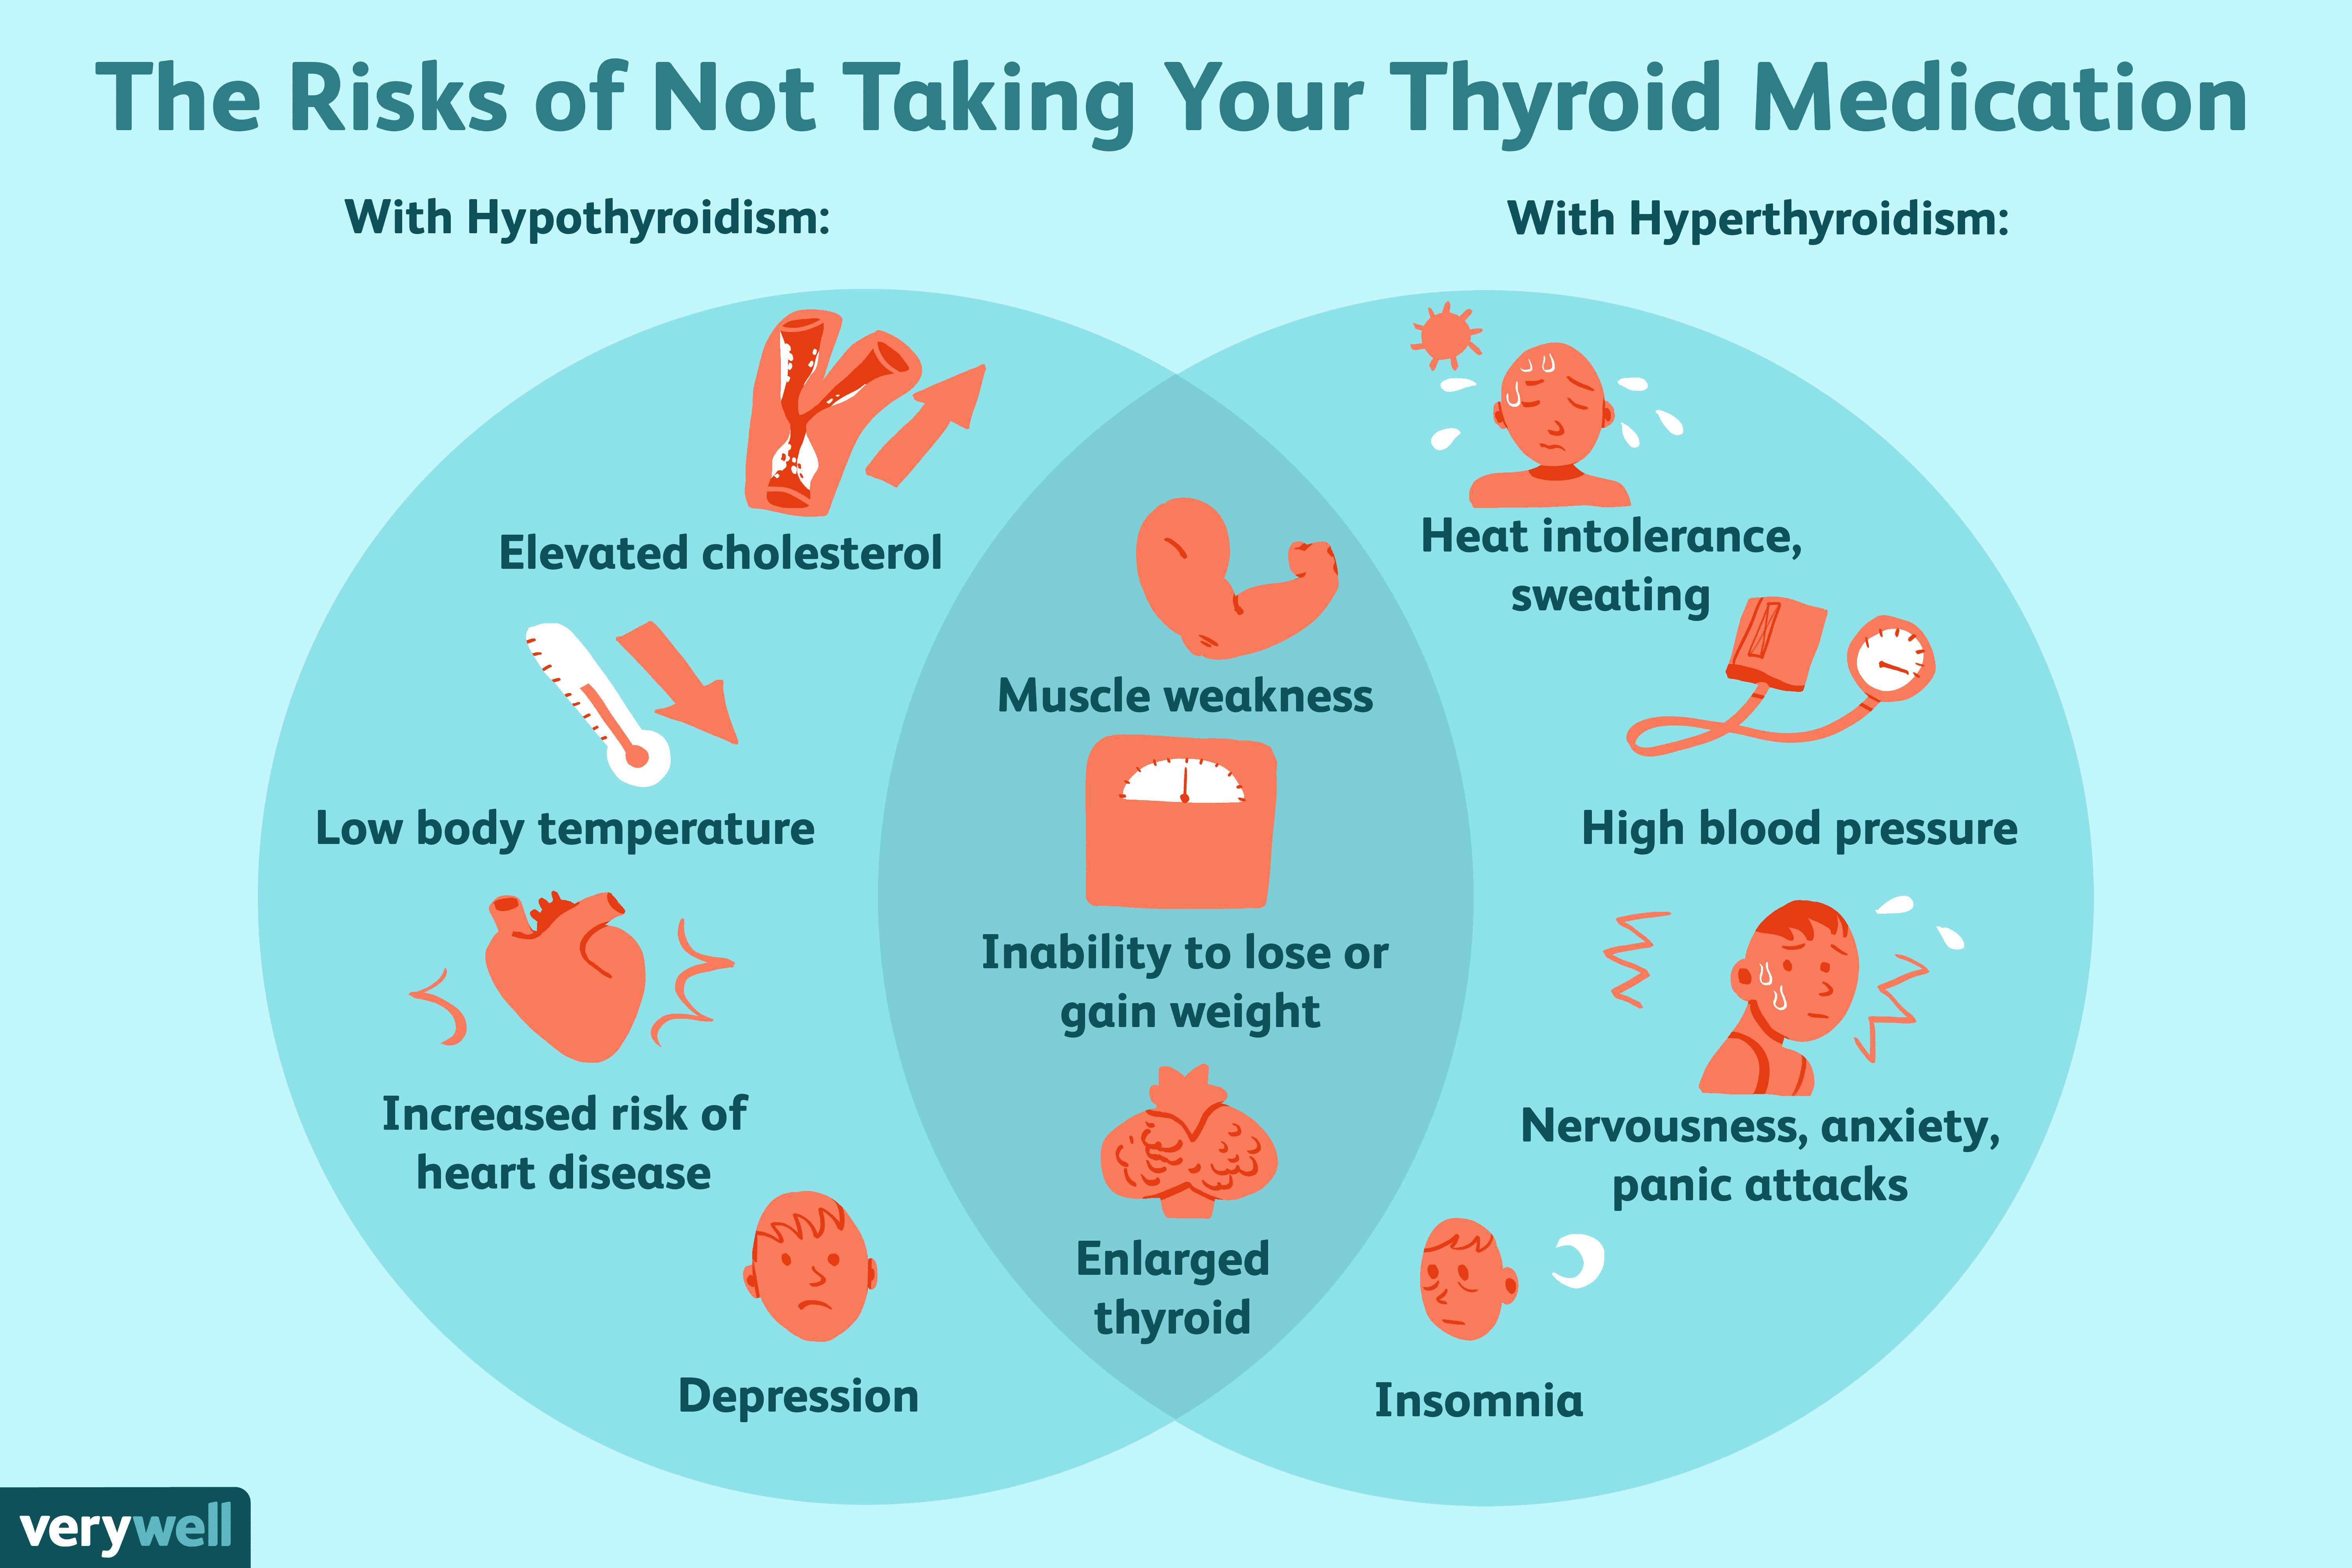 The risks of not taking your thyroid medication